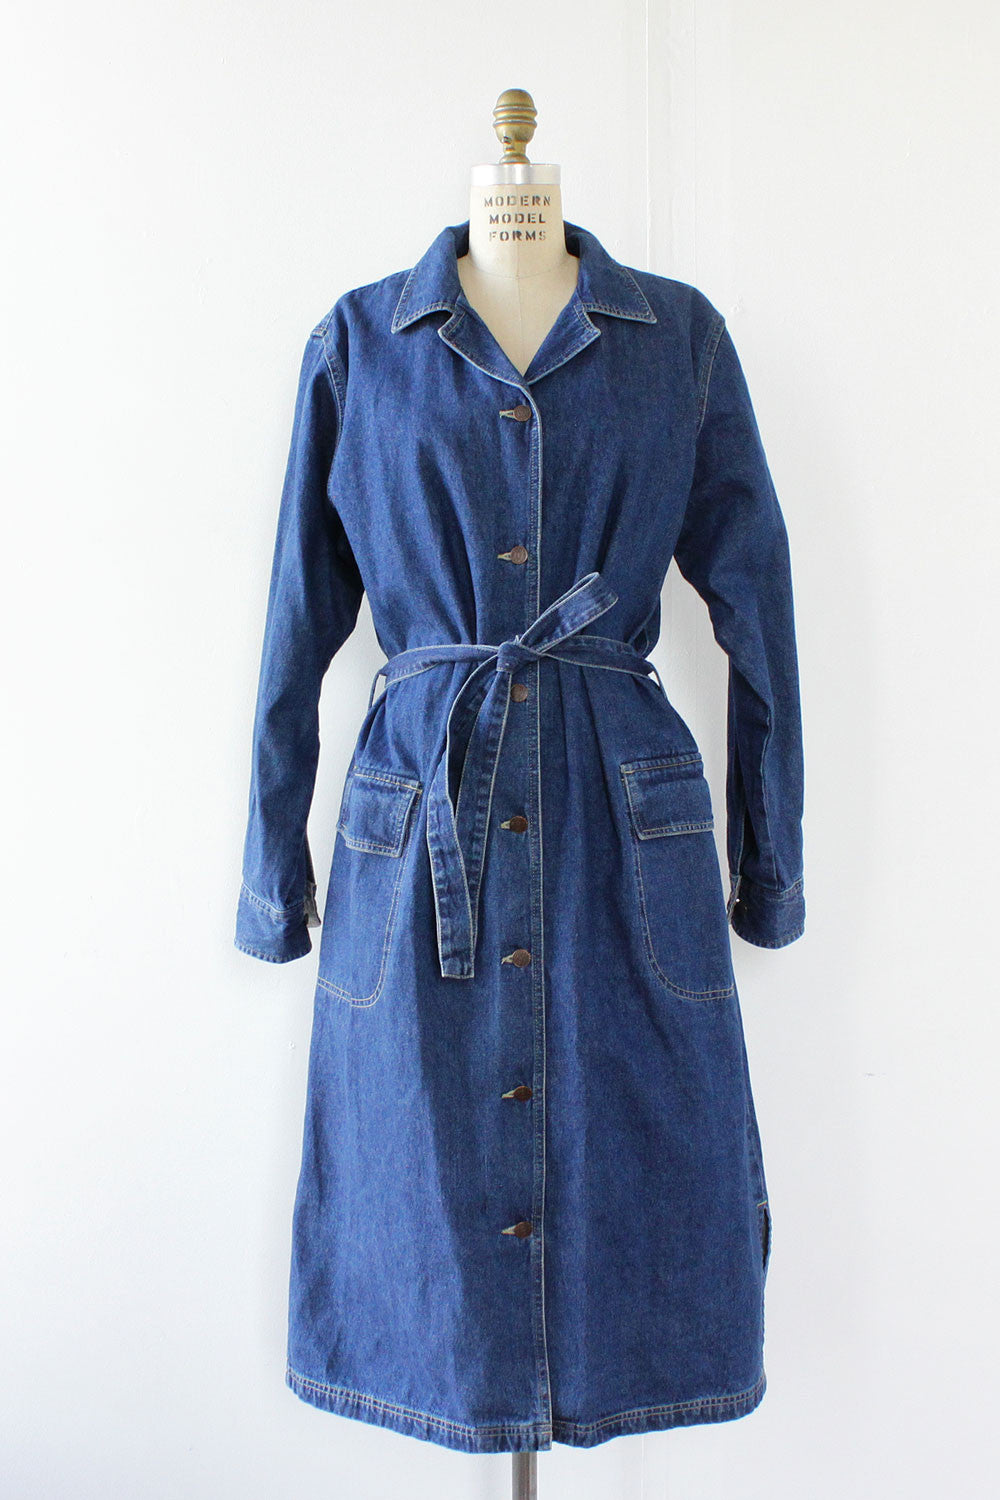 Bill Blass Denim Duster